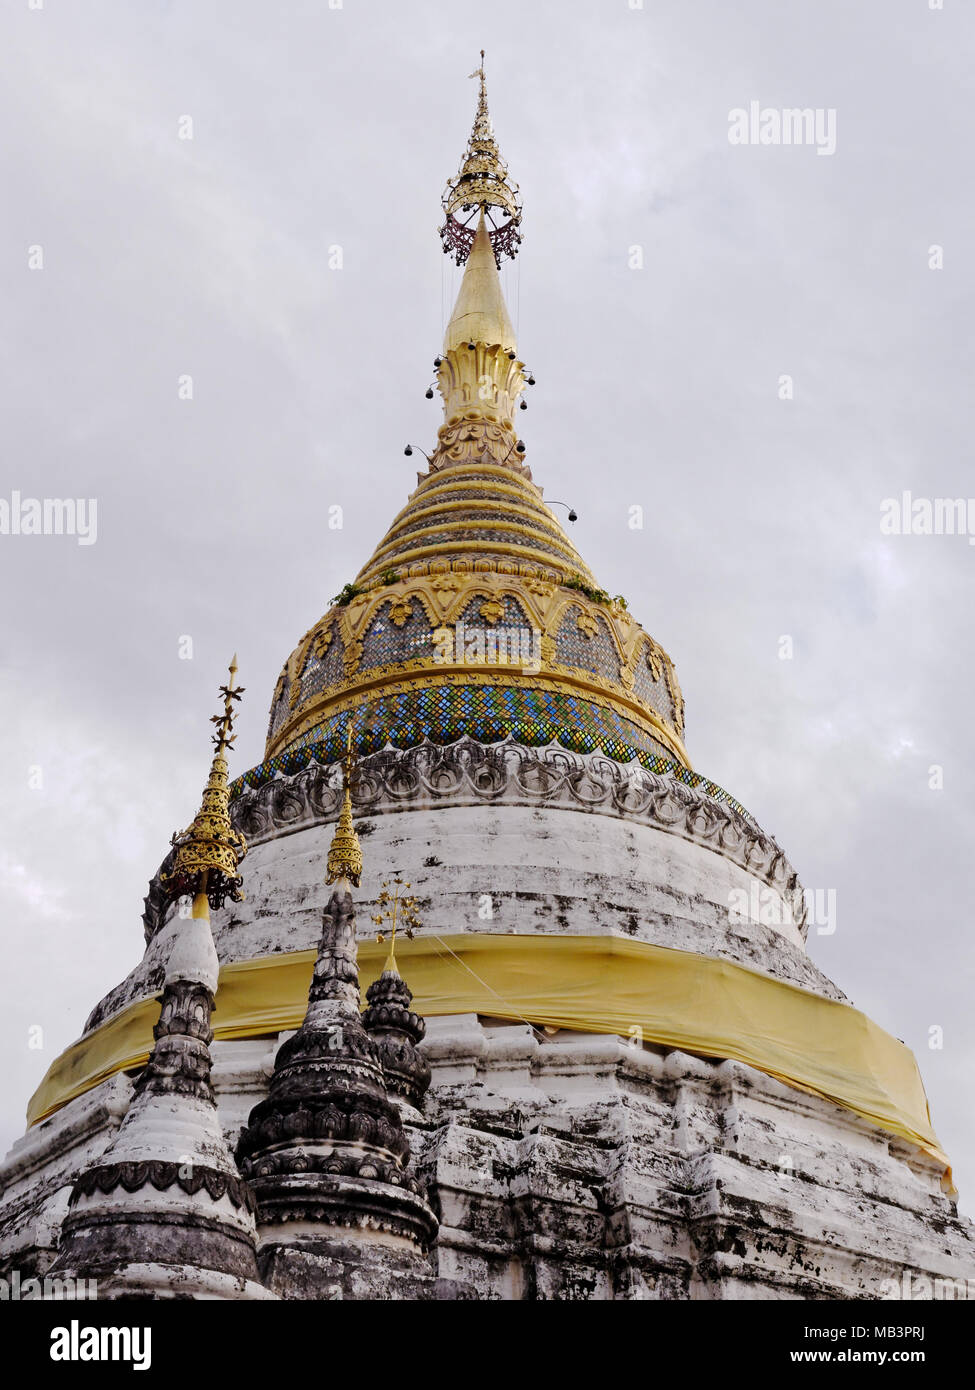 Main stupa or pagoda and sky background in Buppharam temple, which is famous tourist destination in Chiang Mai, Thailand Stock Photo